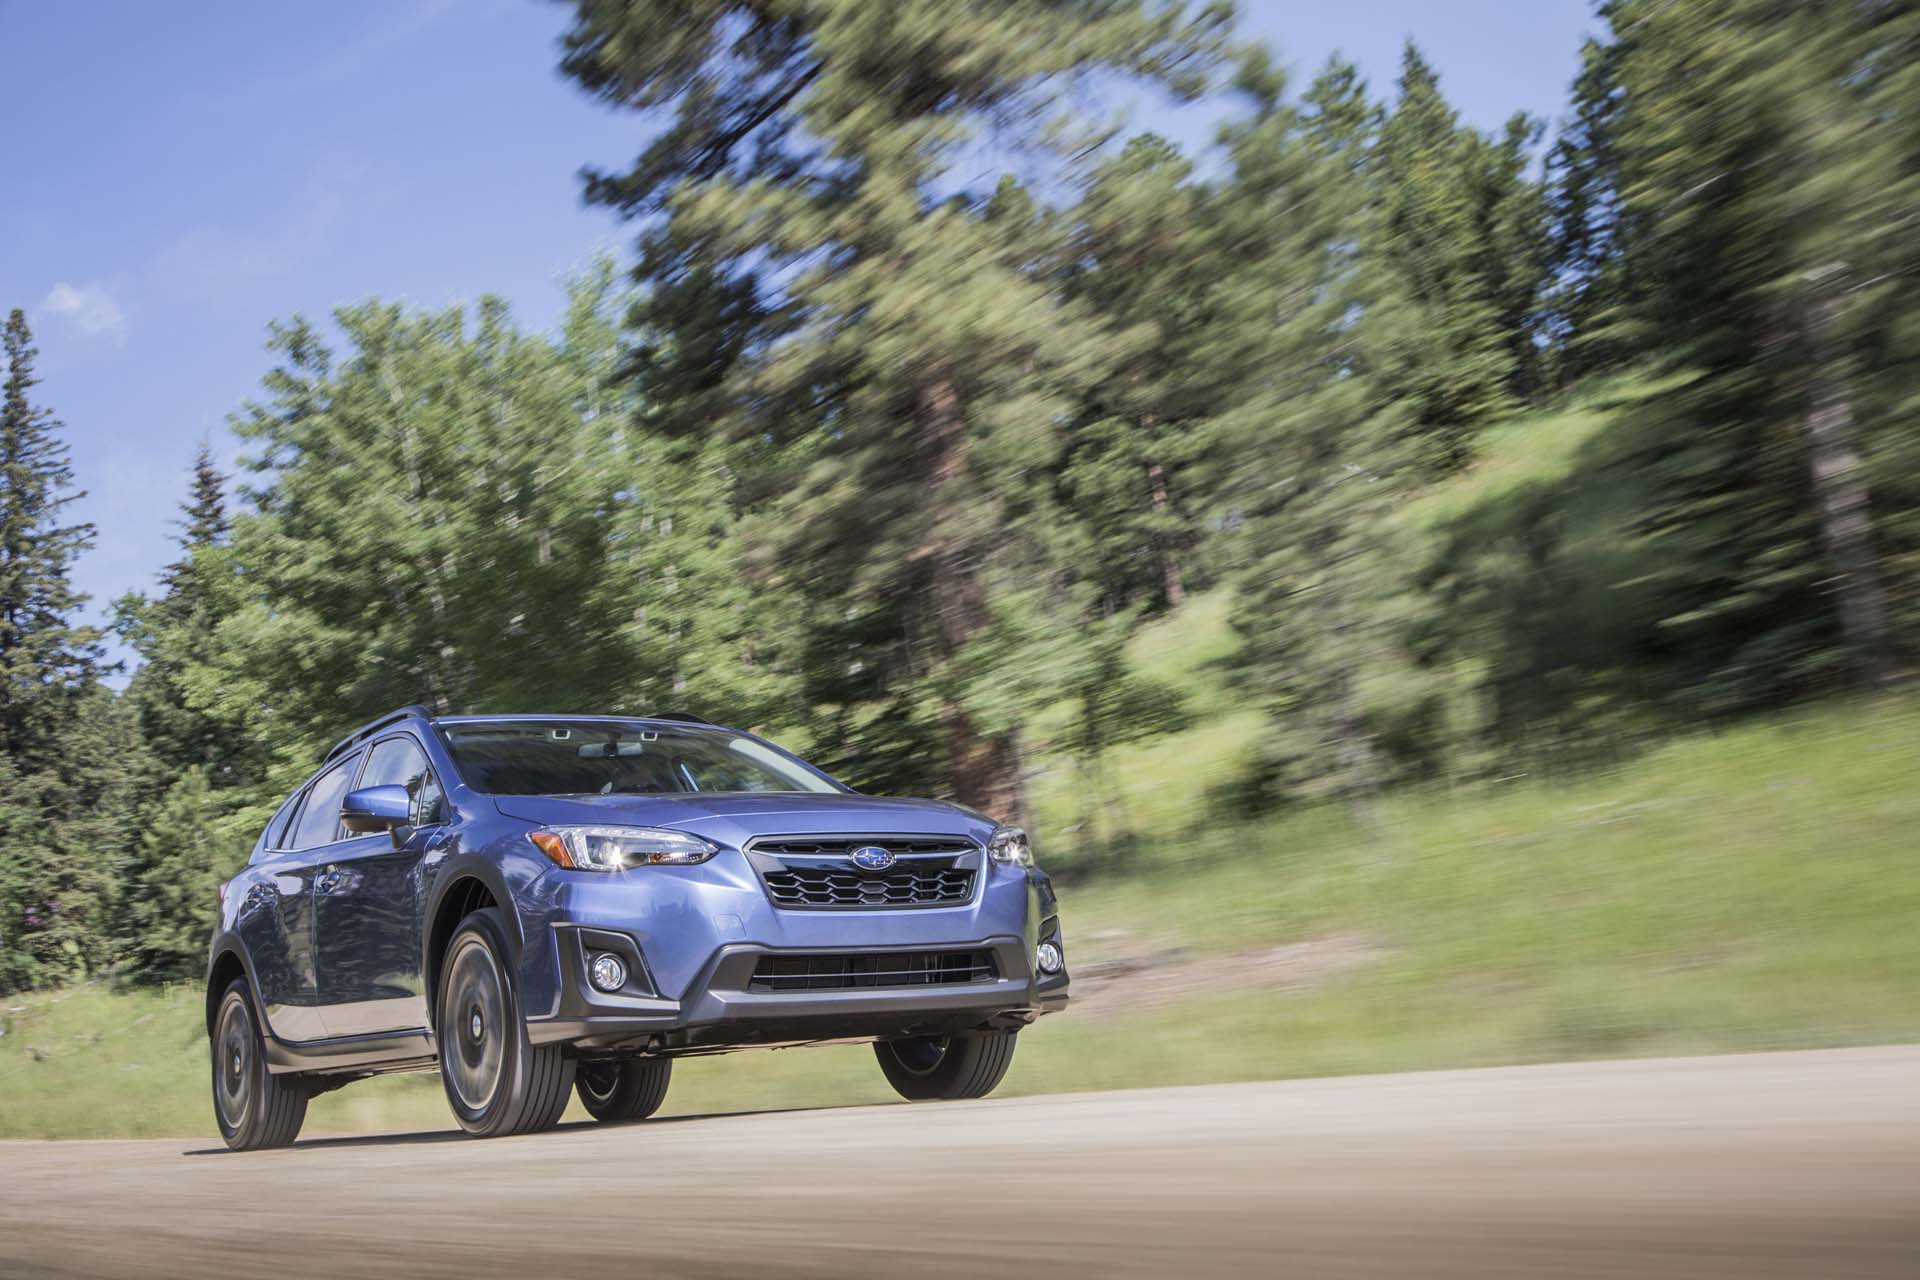 Report: Subaru may use Evoltis name for new plug-in hybrid coming